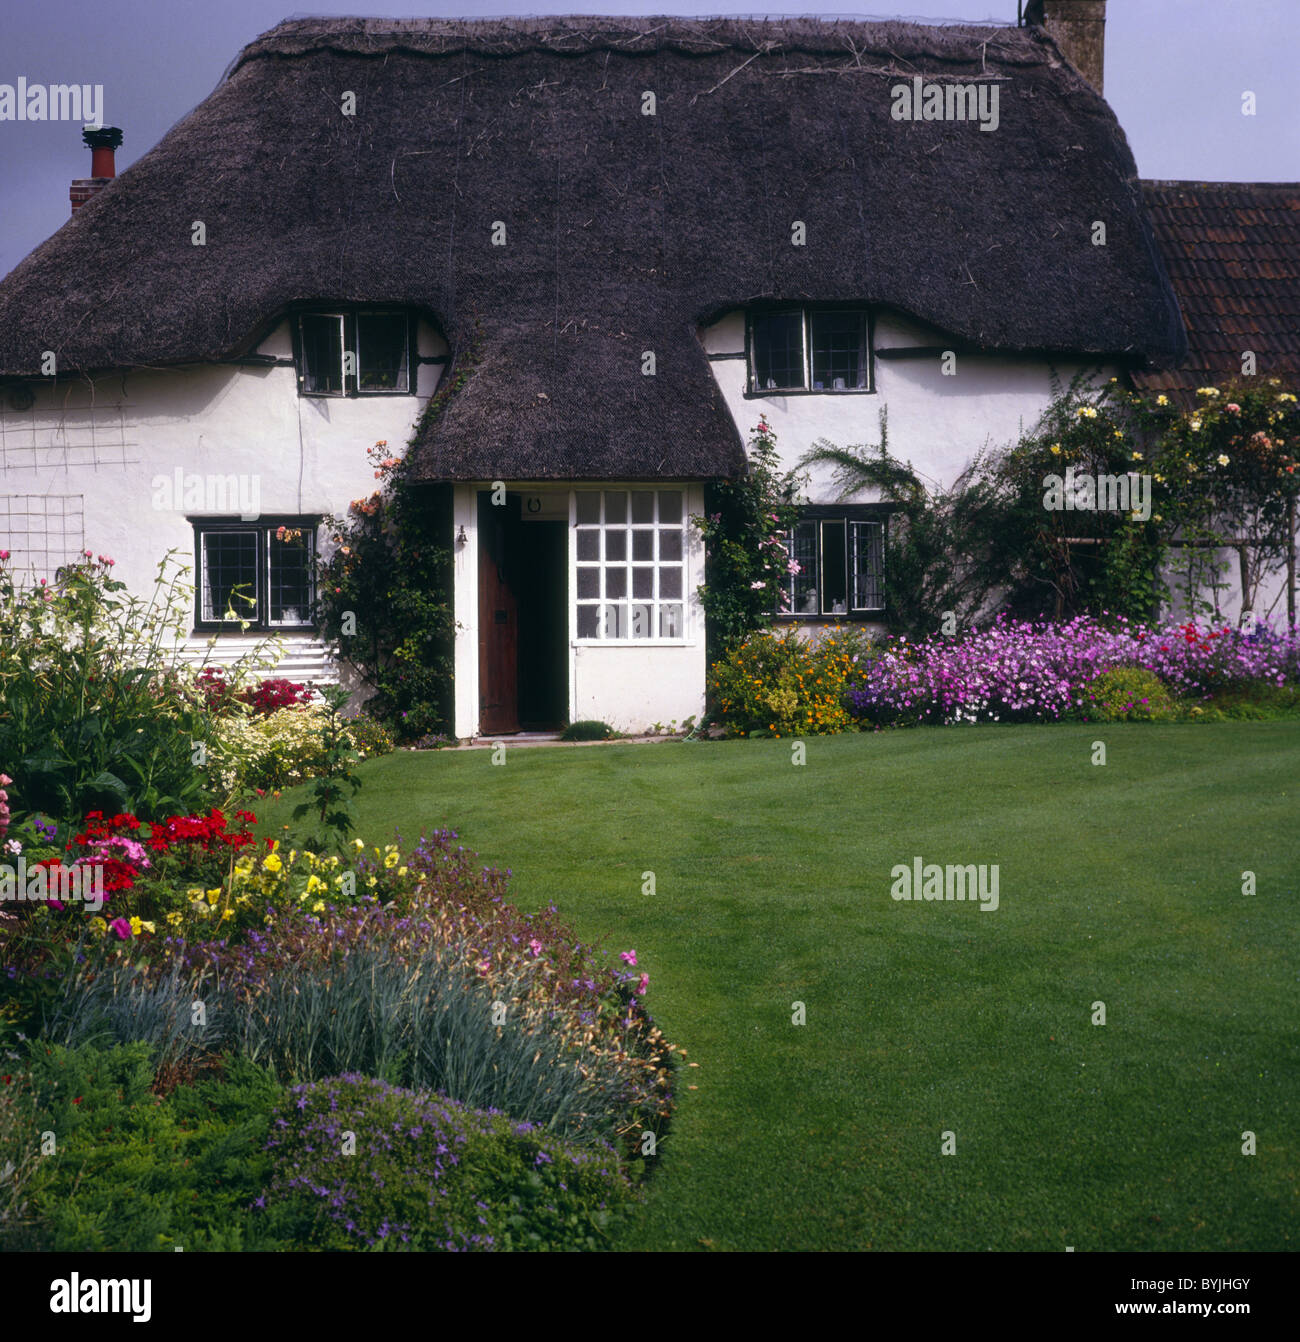 Country cottage garden, Wiltshire, Englandnd - Stock Image